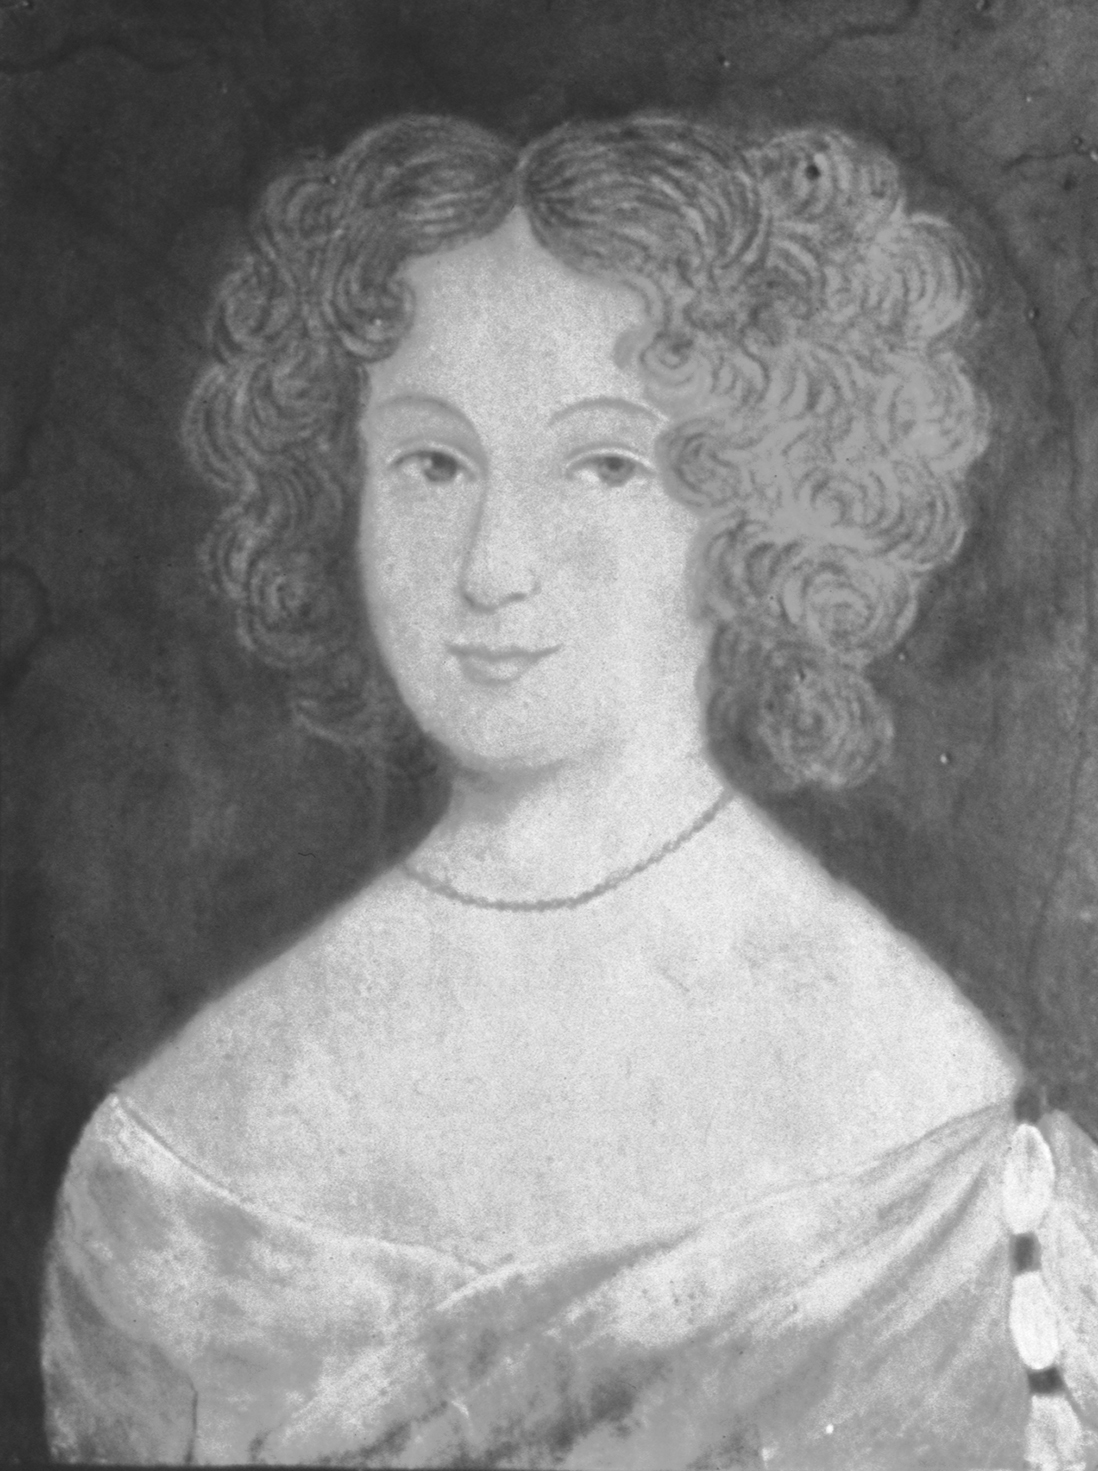 Portrait of Frances Culpeper by an unknown artist (ca. 1660), courtesy of the Museum of Early Southern Decorative Arts at Old Salem, Winston Salem, N.C.